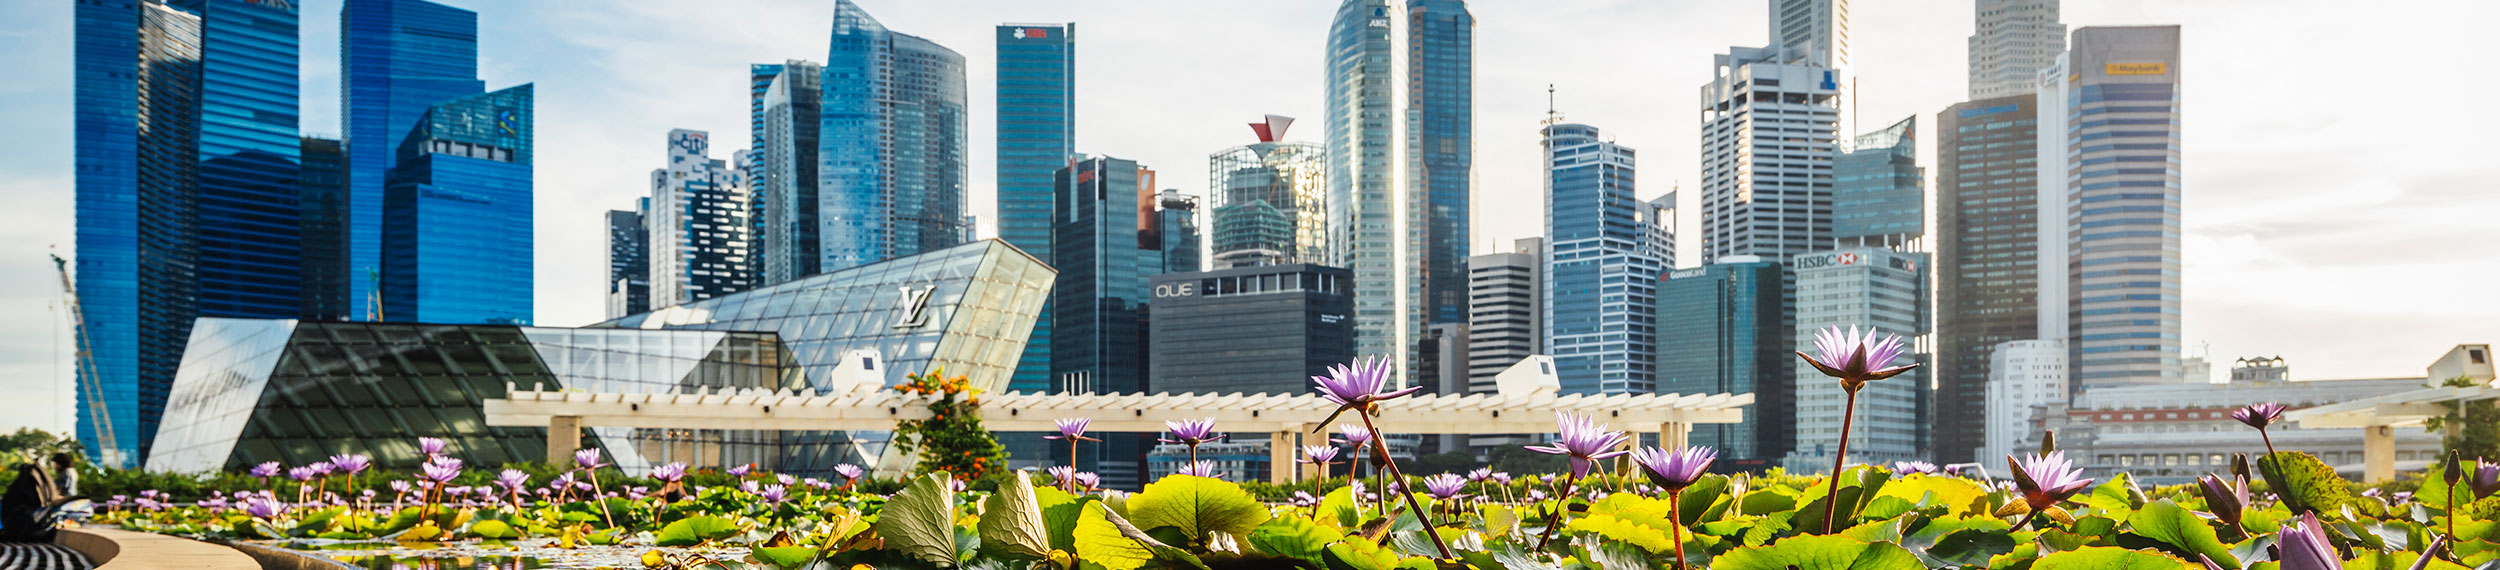 Singapore Skyline near Marina Bay and pond with lilies in the foreground and central business district at daytime in the background.